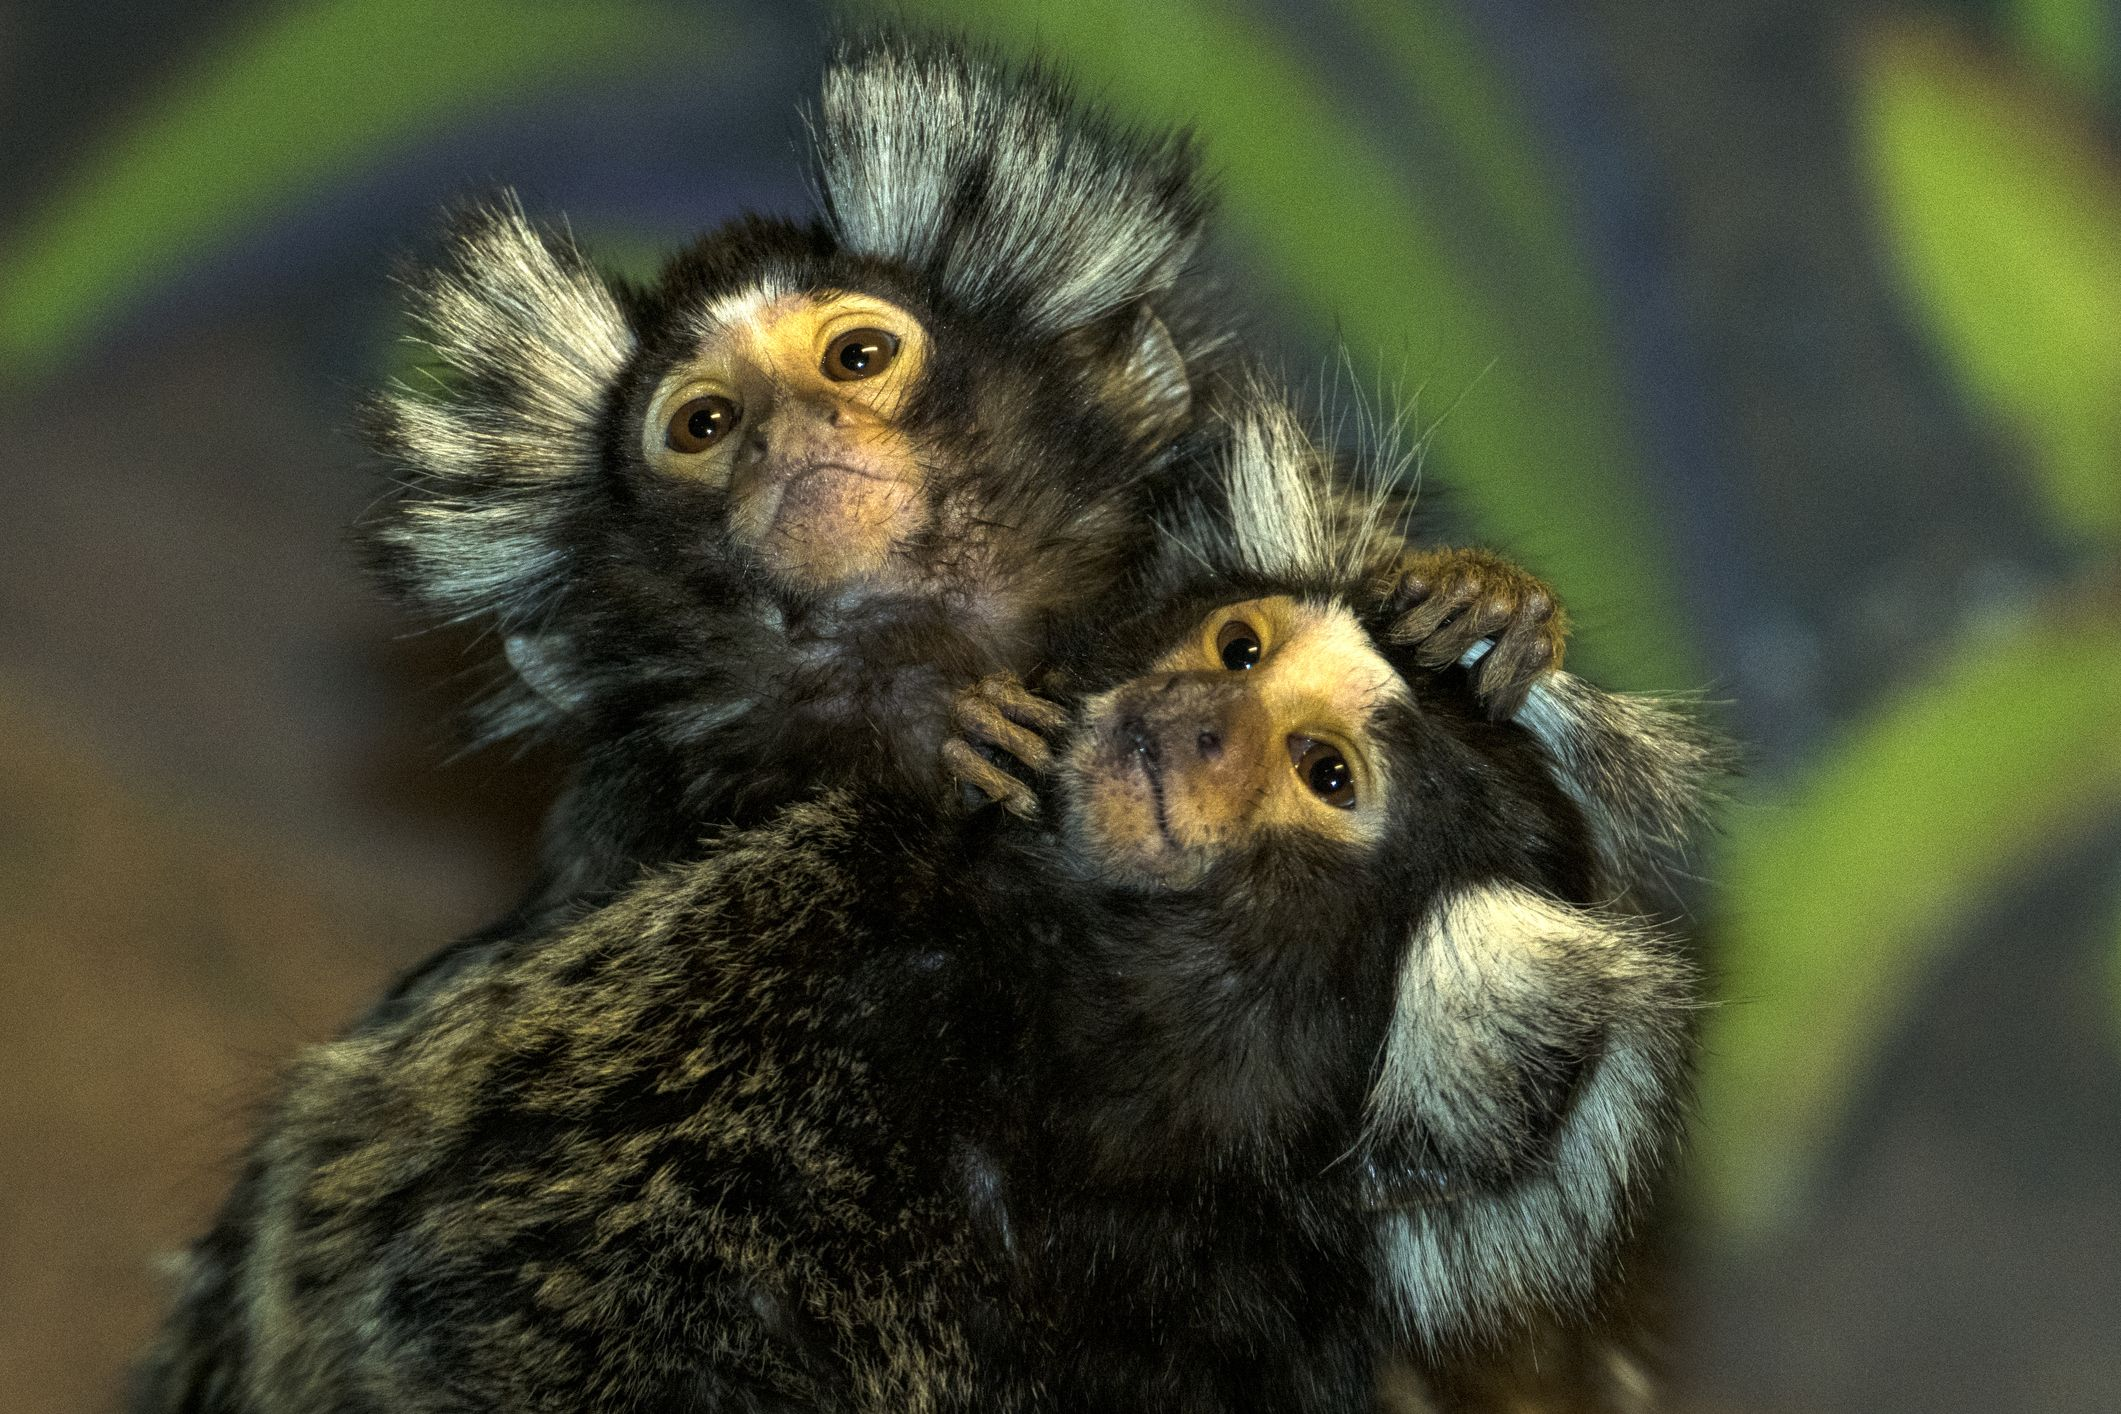 Weirdly, Monkeys Keep Domesticating Themselves. Huh.